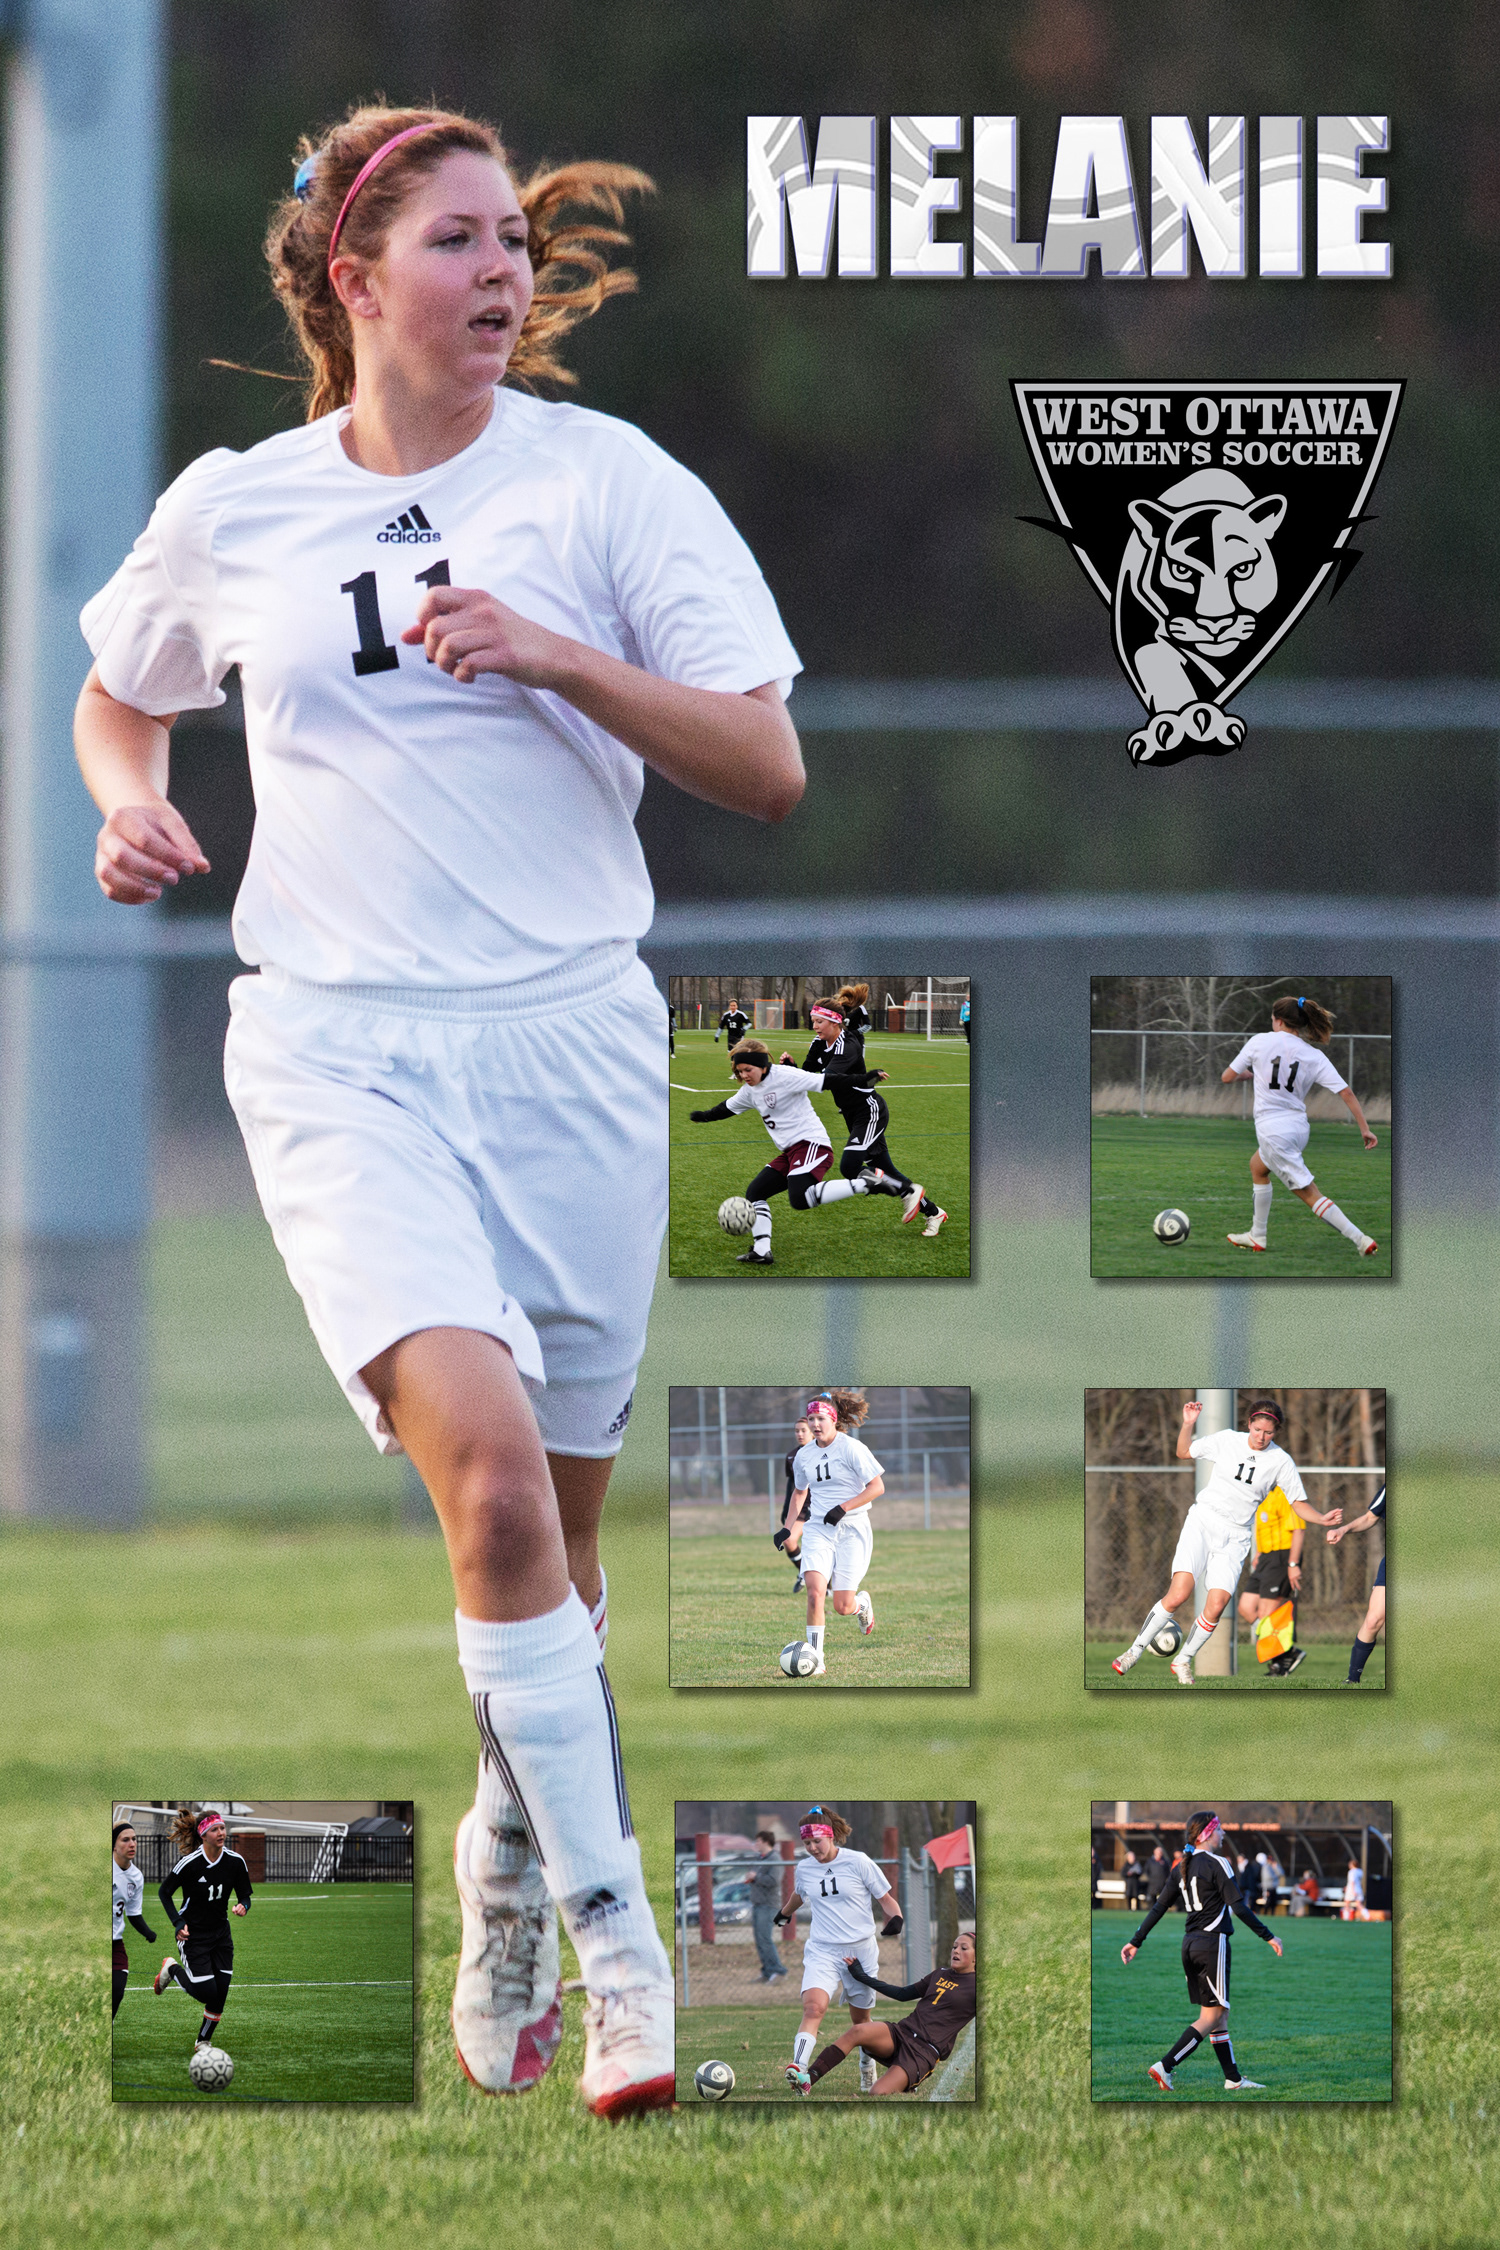 These Are As Series Of 20x30 Posters I Designed And Produced For A Local High School Girls Soccer Team Senior Class Combined Images With Some